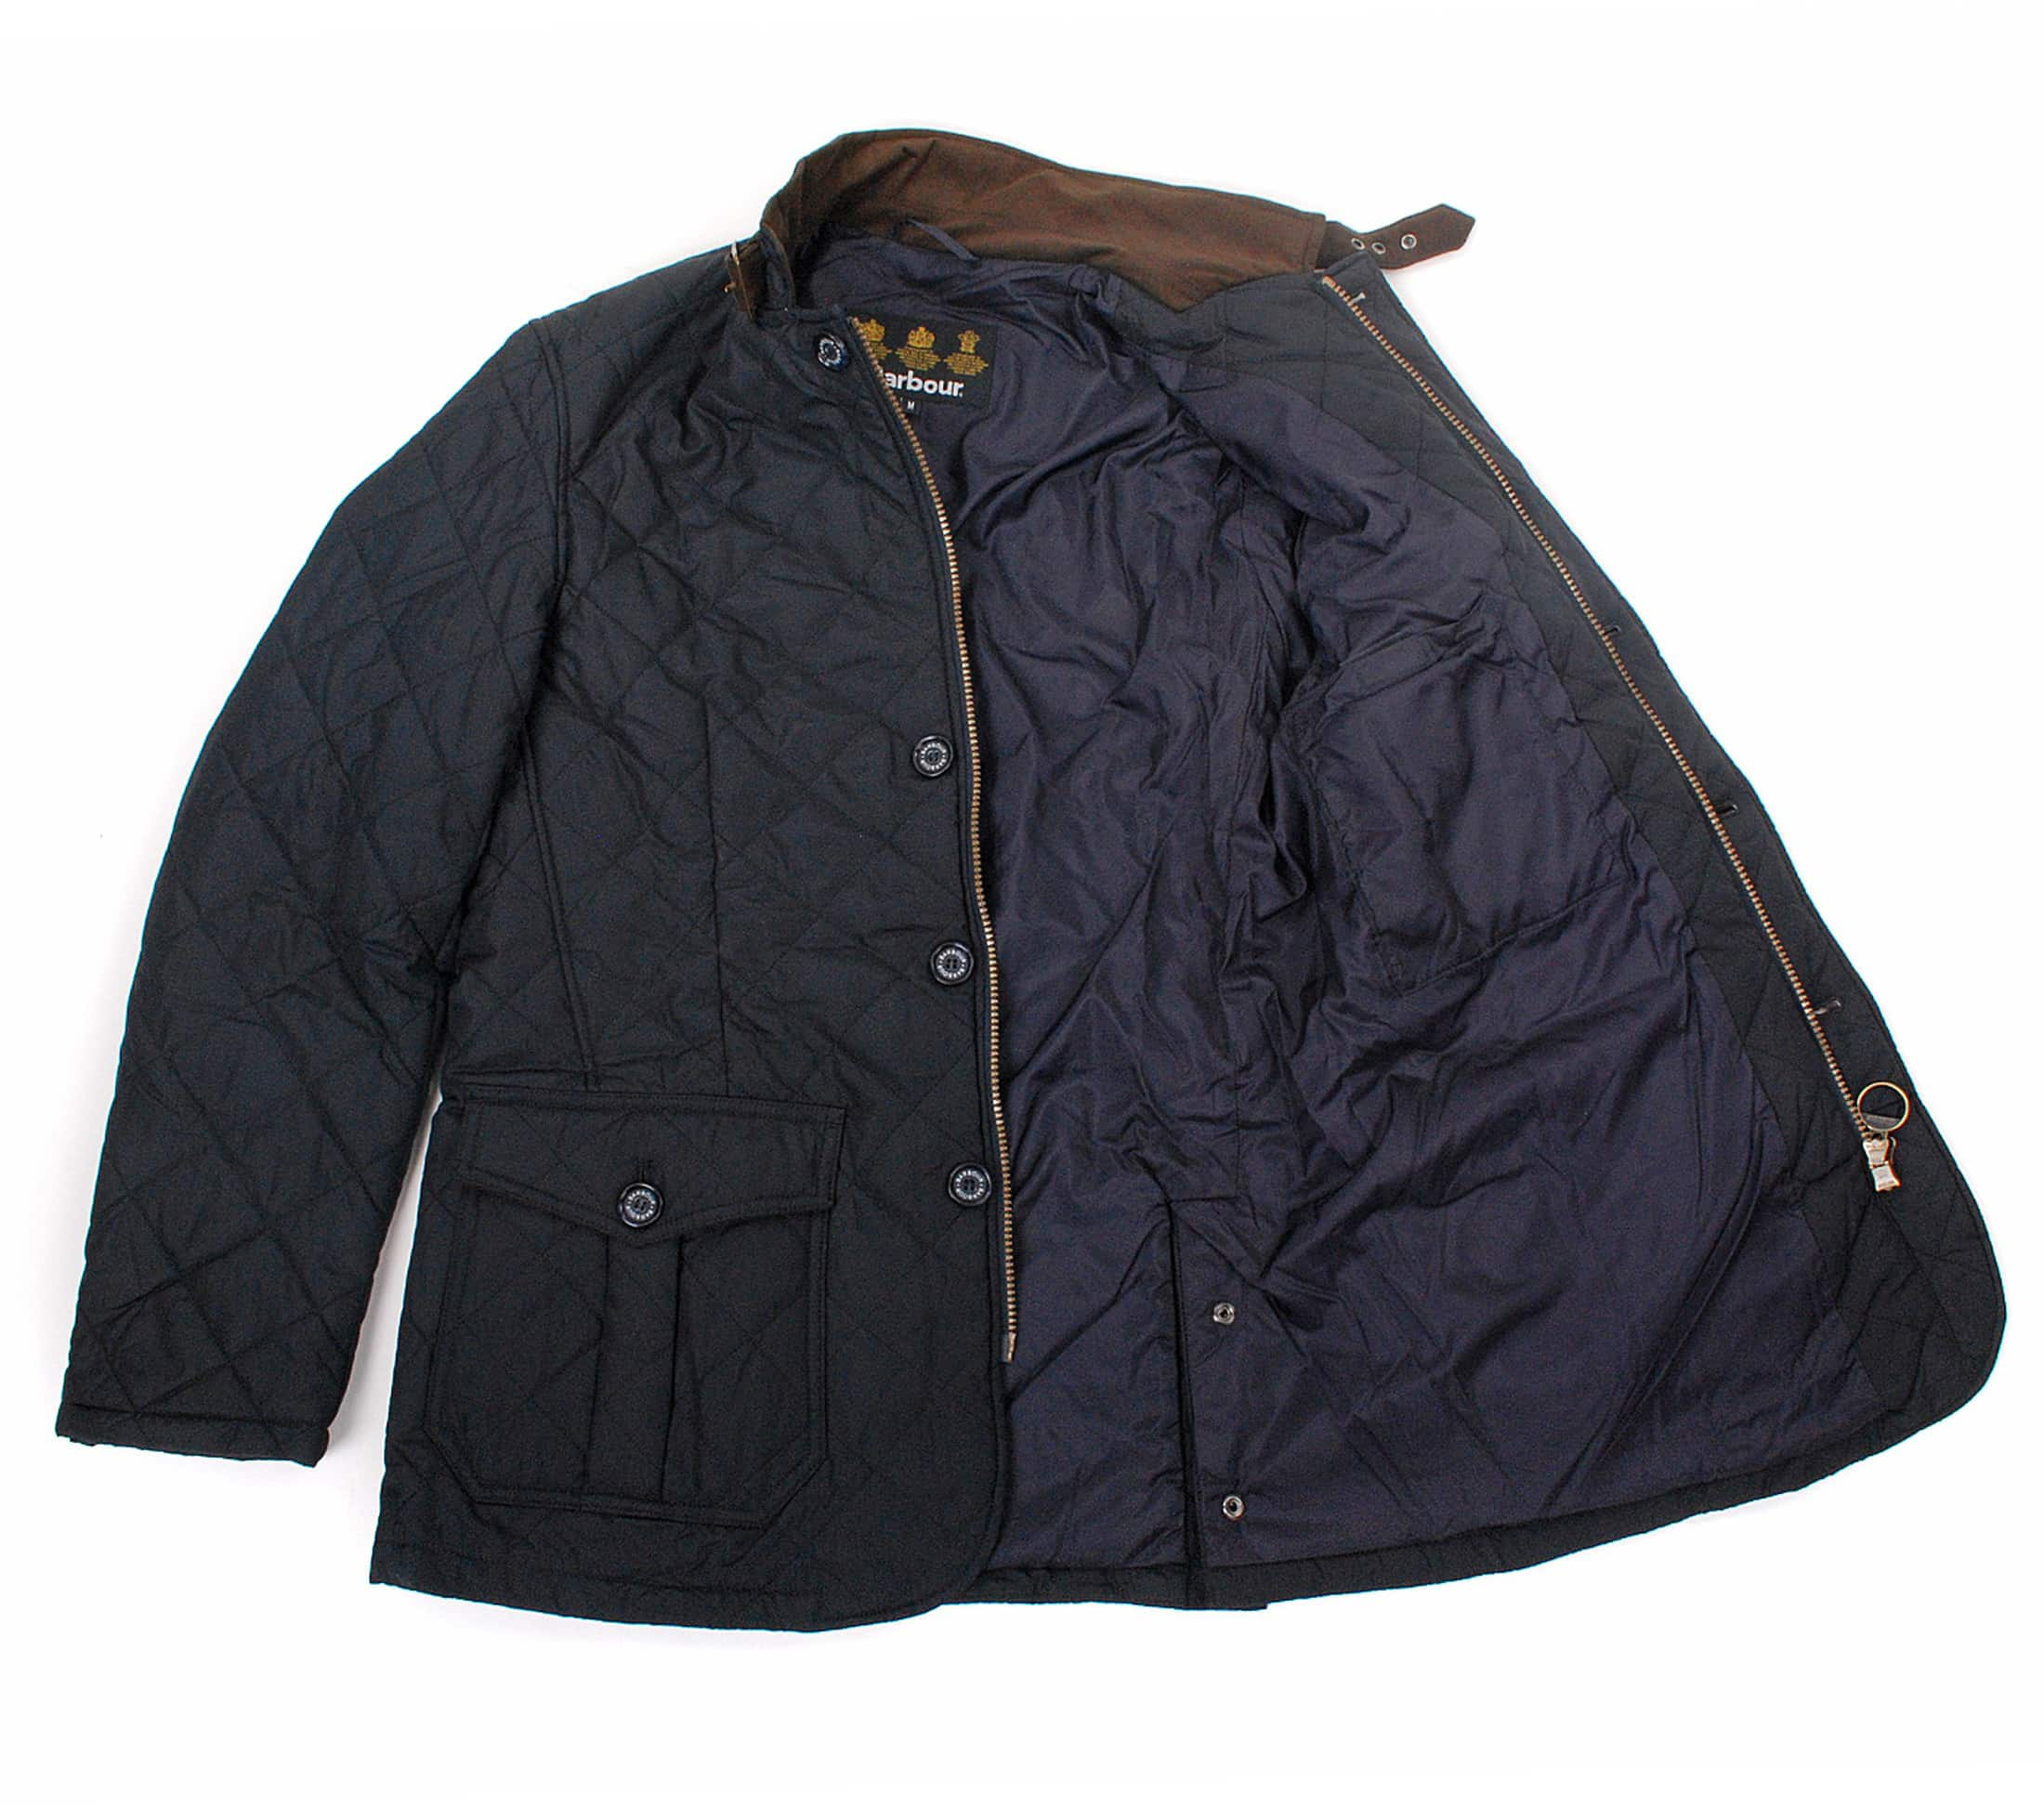 Barbour Jas Quilted Lutz foto 6